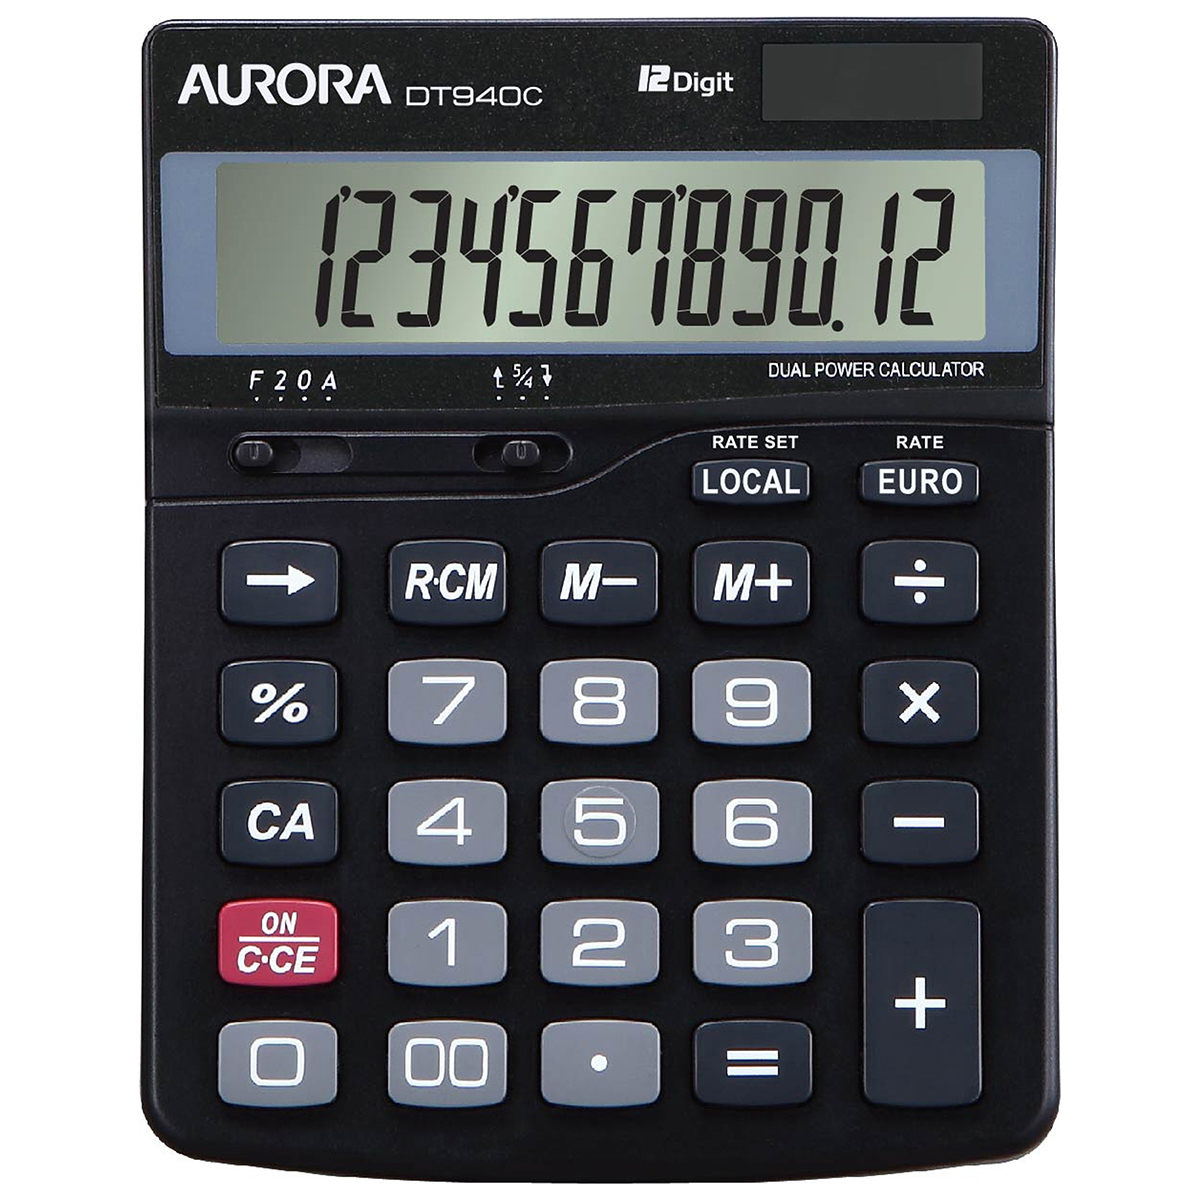 Aurora DT940C Desk Calculator